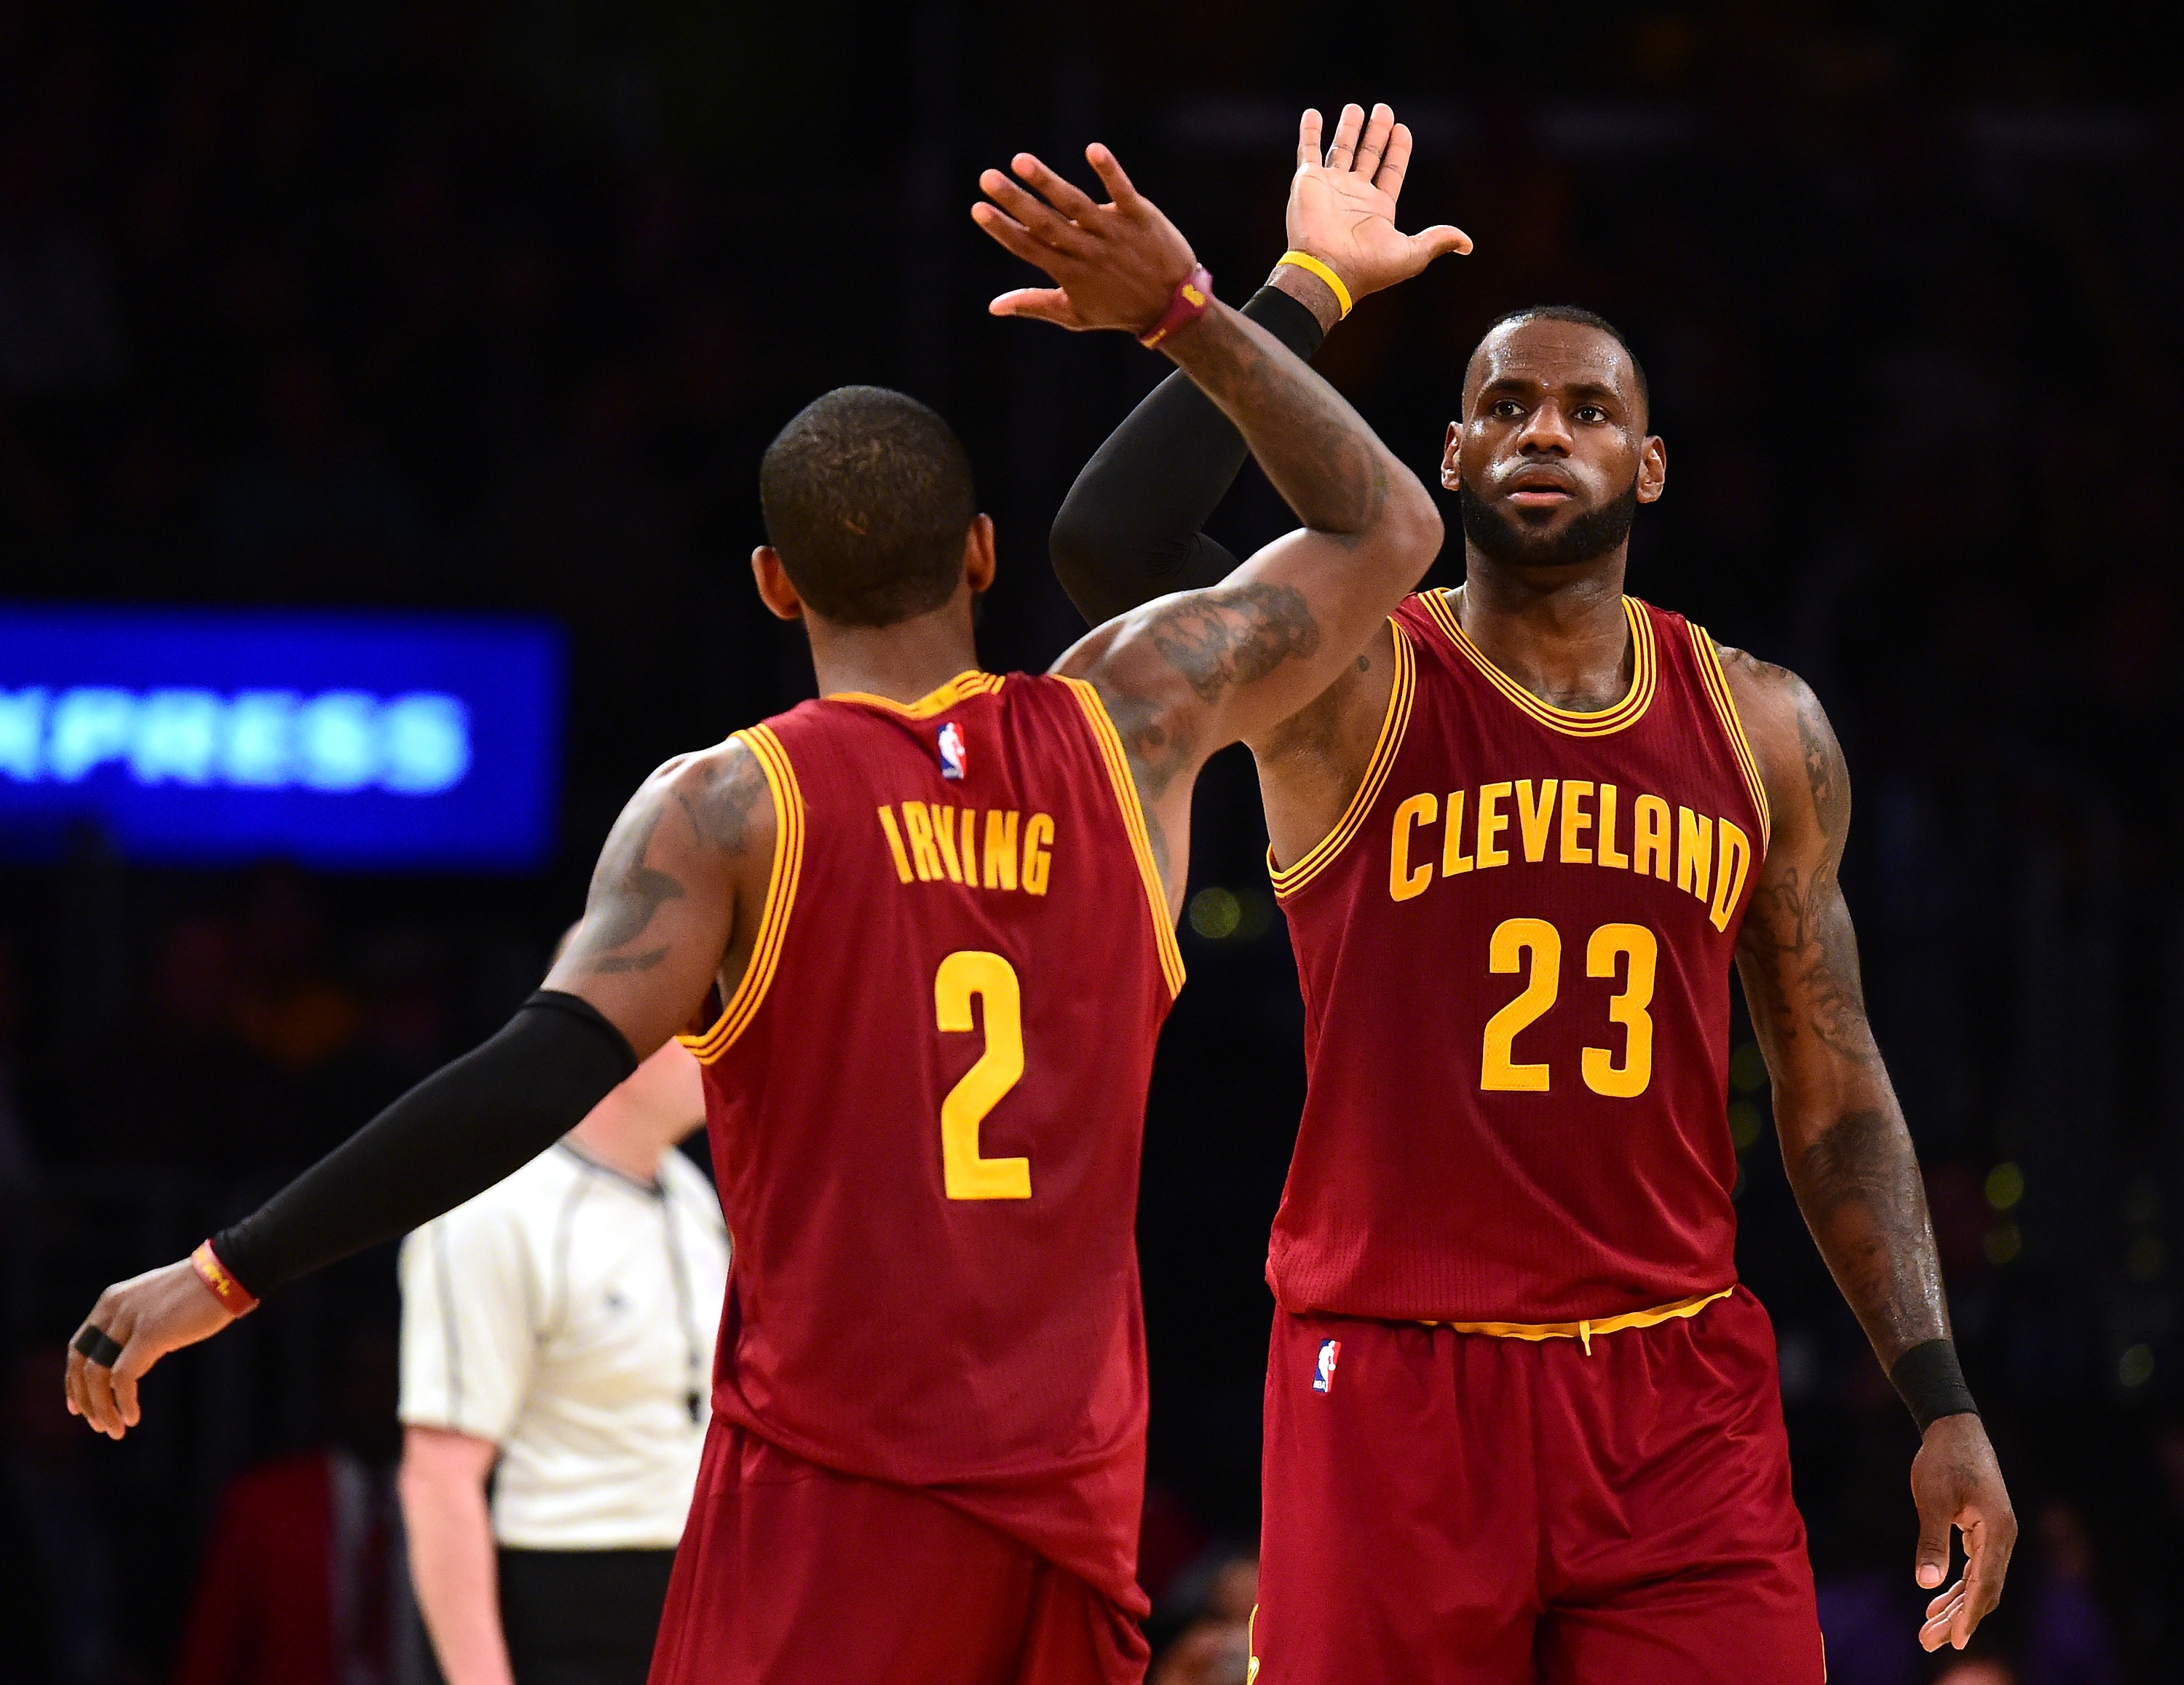 Cleveland Cavaliers >> Should Cavaliers Fans Be Worried About Their Team Sbnation Com